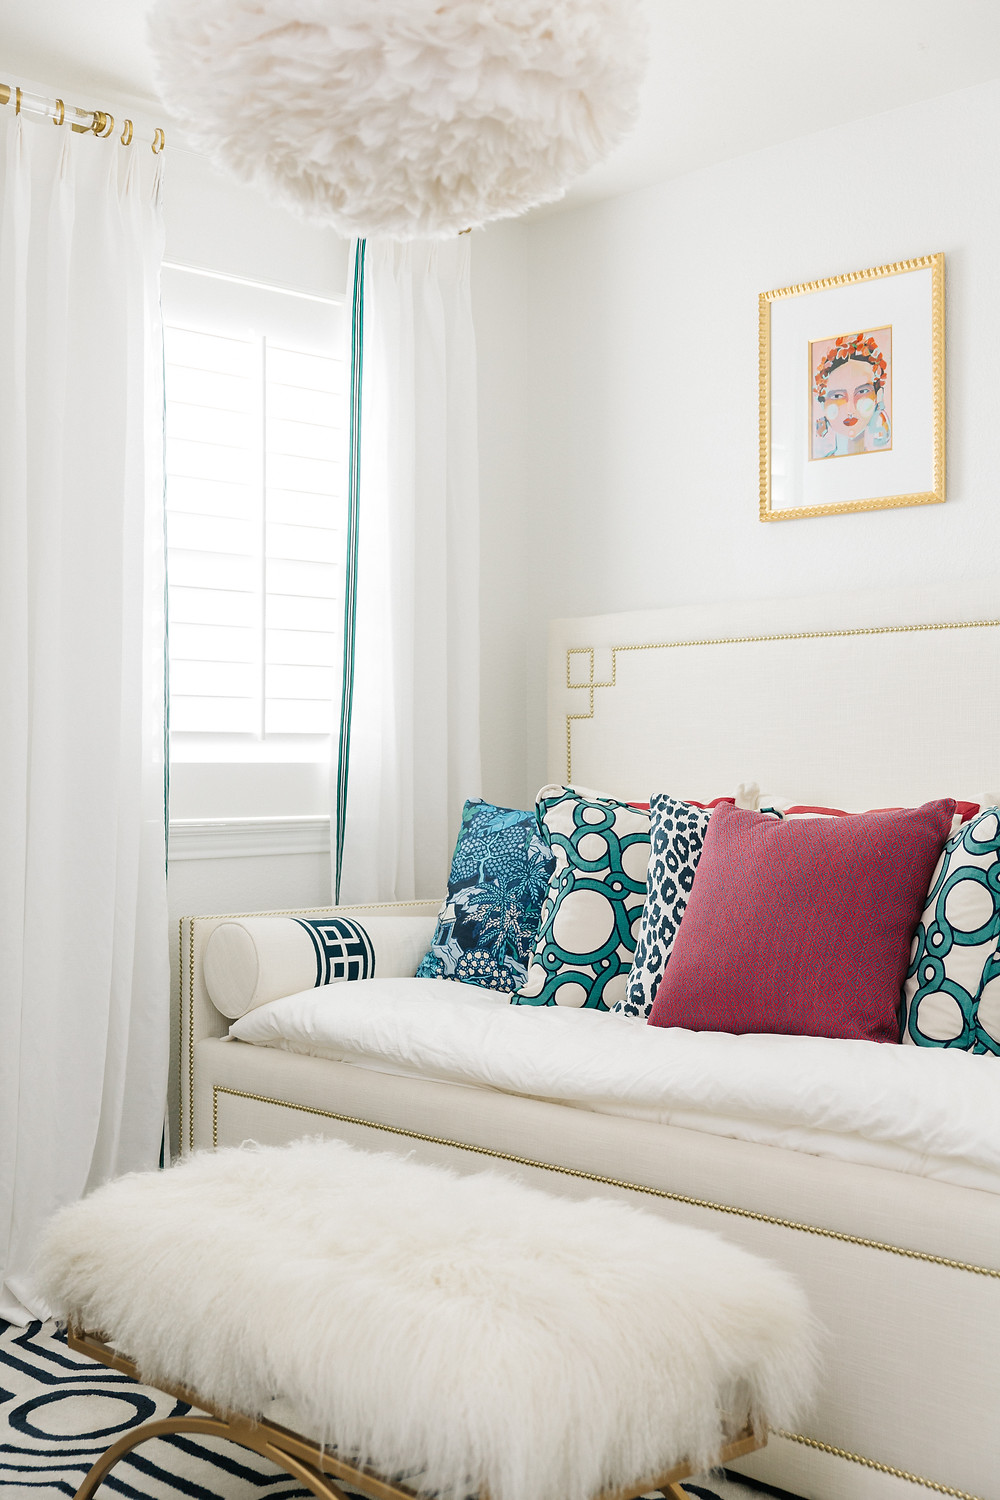 Guest Bedroom With White Walls, White Furnishings And Pops Of Color In Pillows